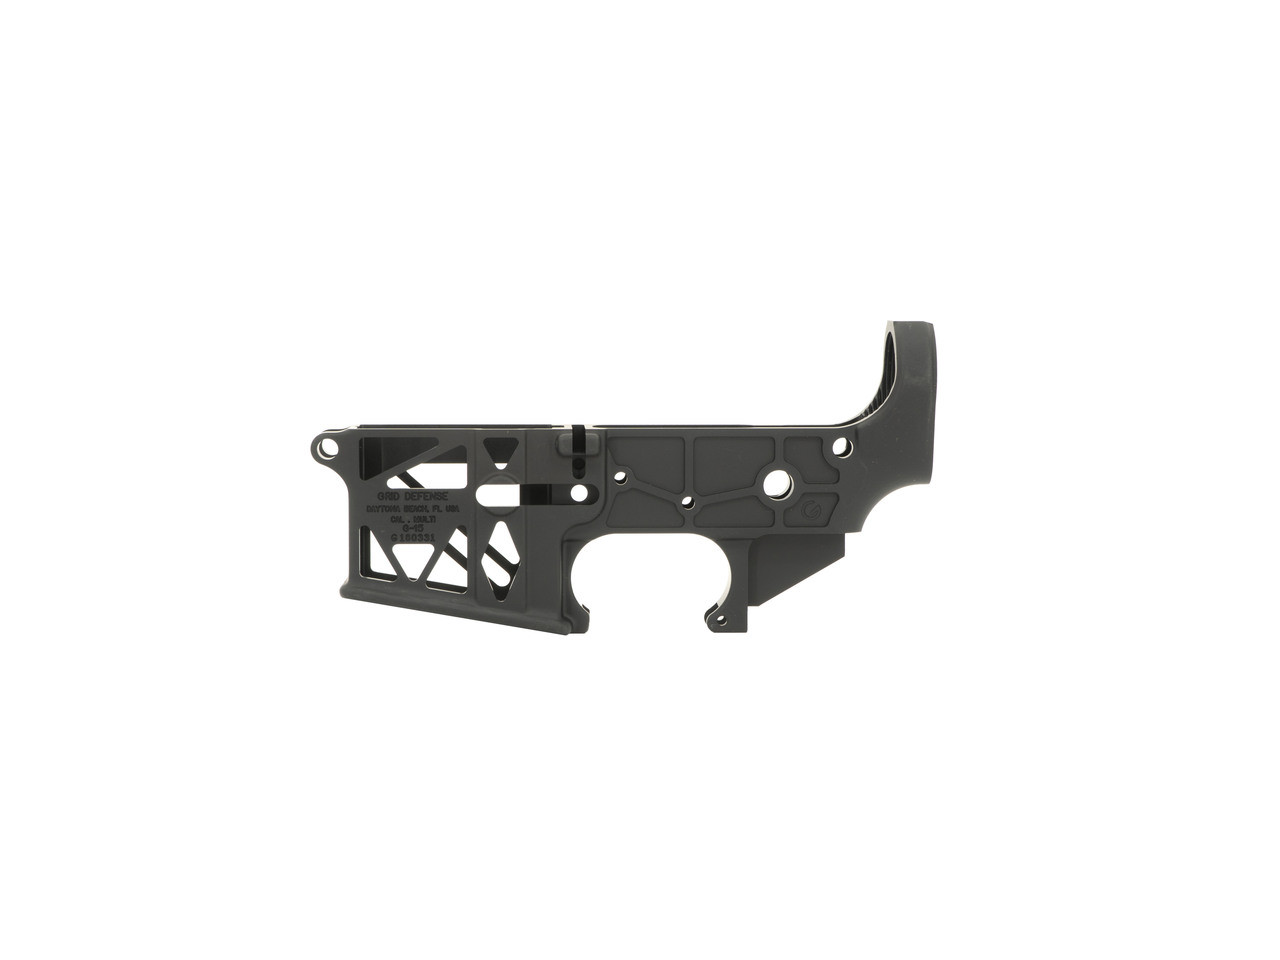 Grid Defense AR15 Stripped Skeletonized Lower Receiver - Black Anodized